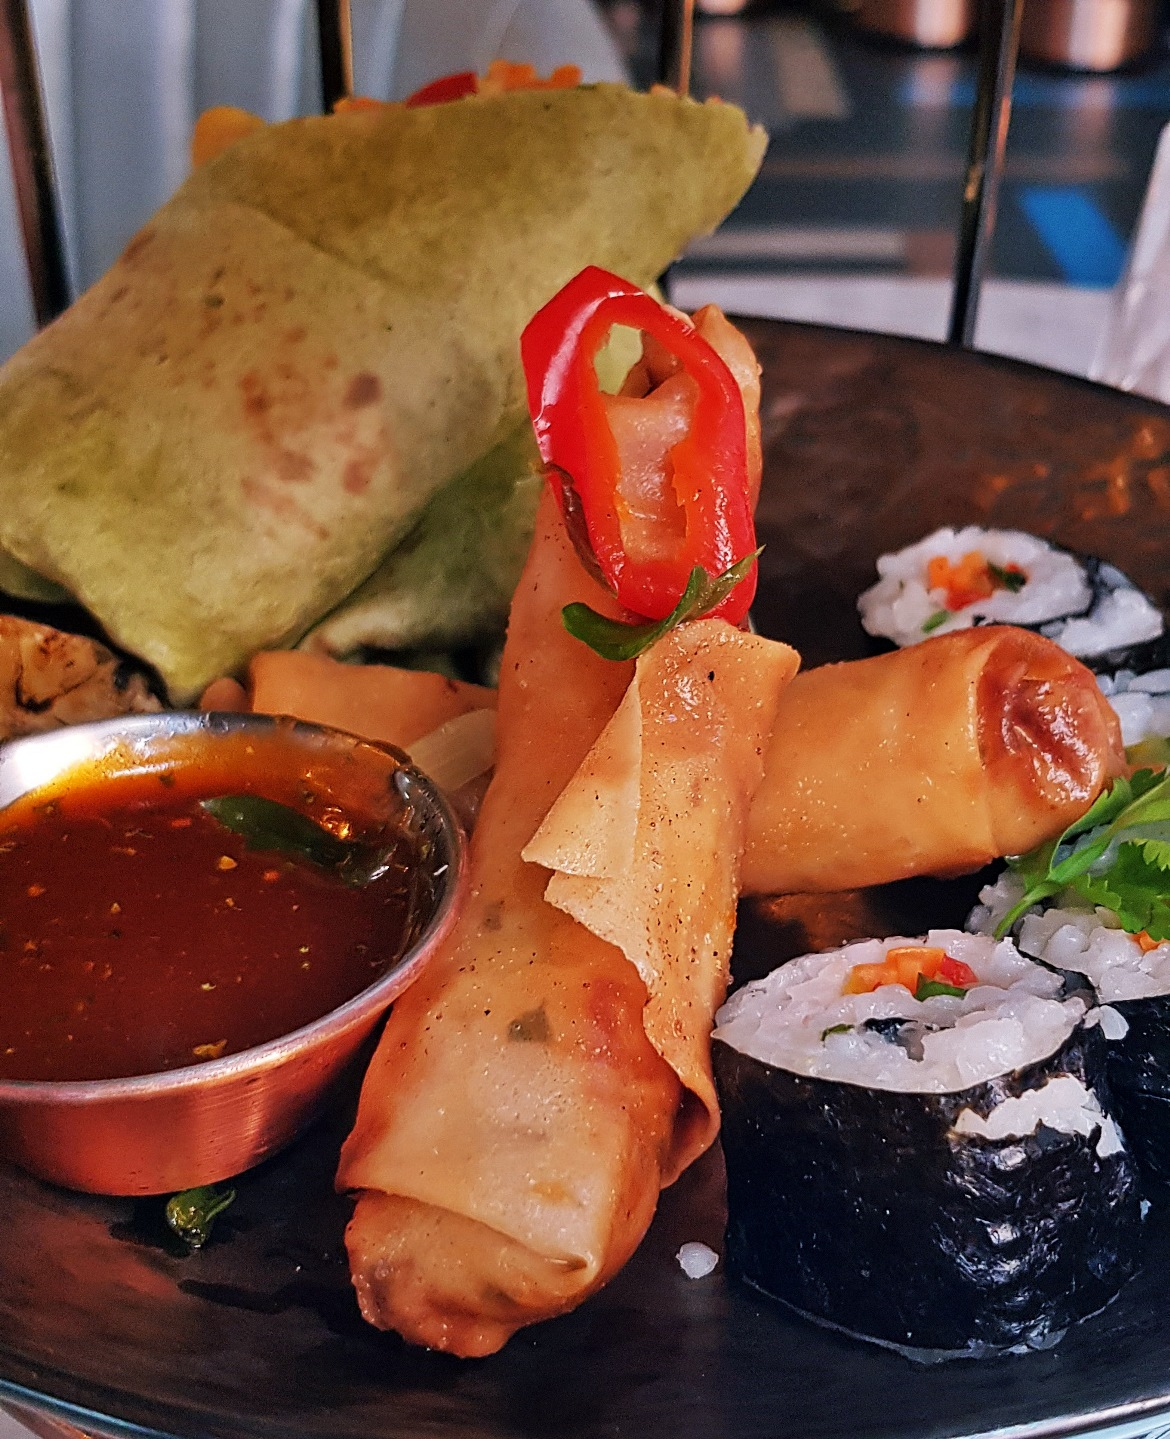 Spring rolls, halloumi wrap and sushi - Bottomless Brunch at Dirty Martini, review by BeckyBecky Blogs